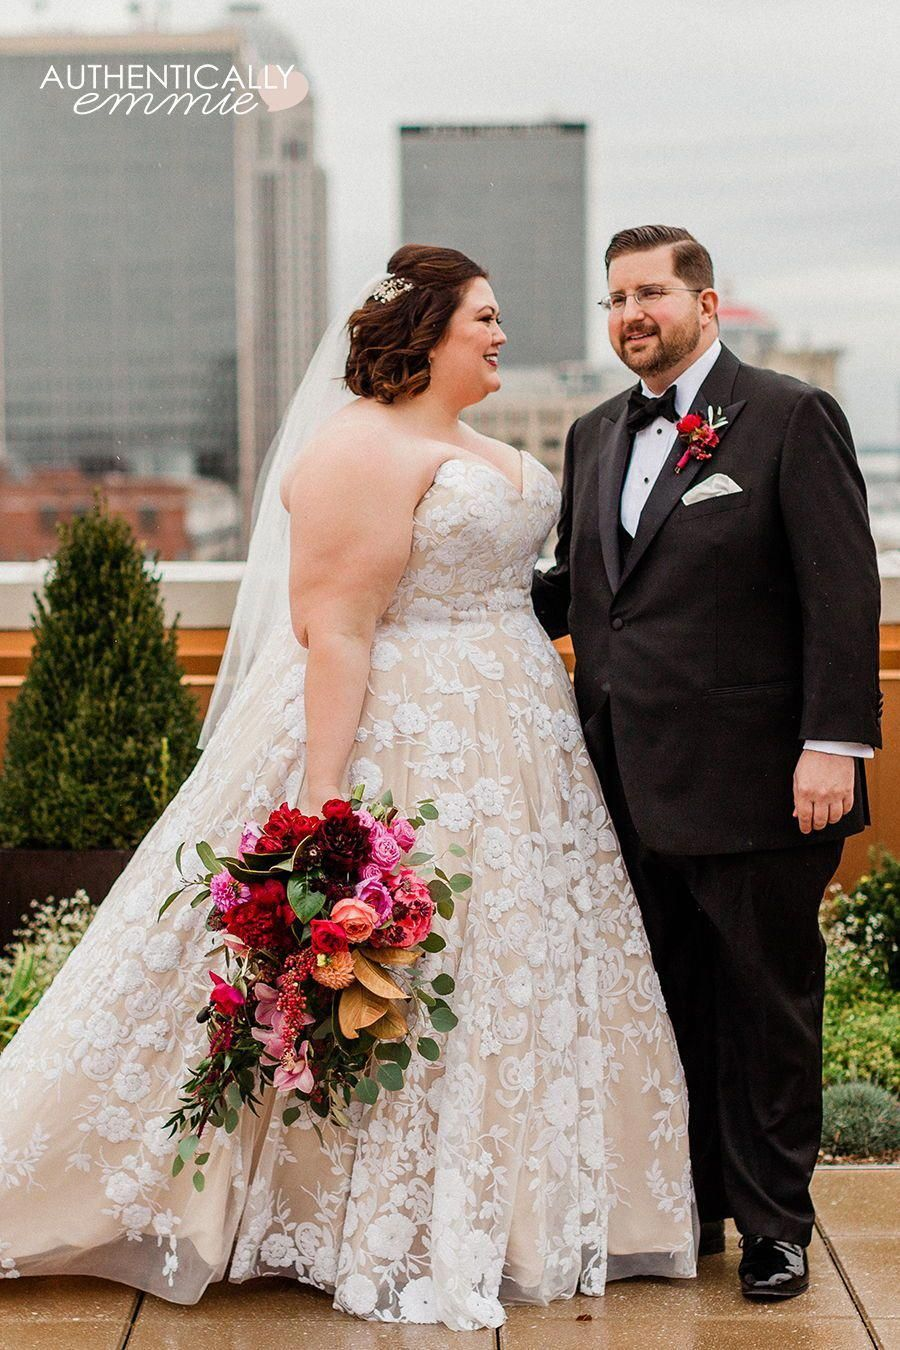 A Small Fall Formal Wedding In Louisville Kentucky At The Brown Hotel With Plussize Bride Fashion Blogger Au Wedding Dresses Plus Size Bride Plus Size Wedding [ 1350 x 900 Pixel ]